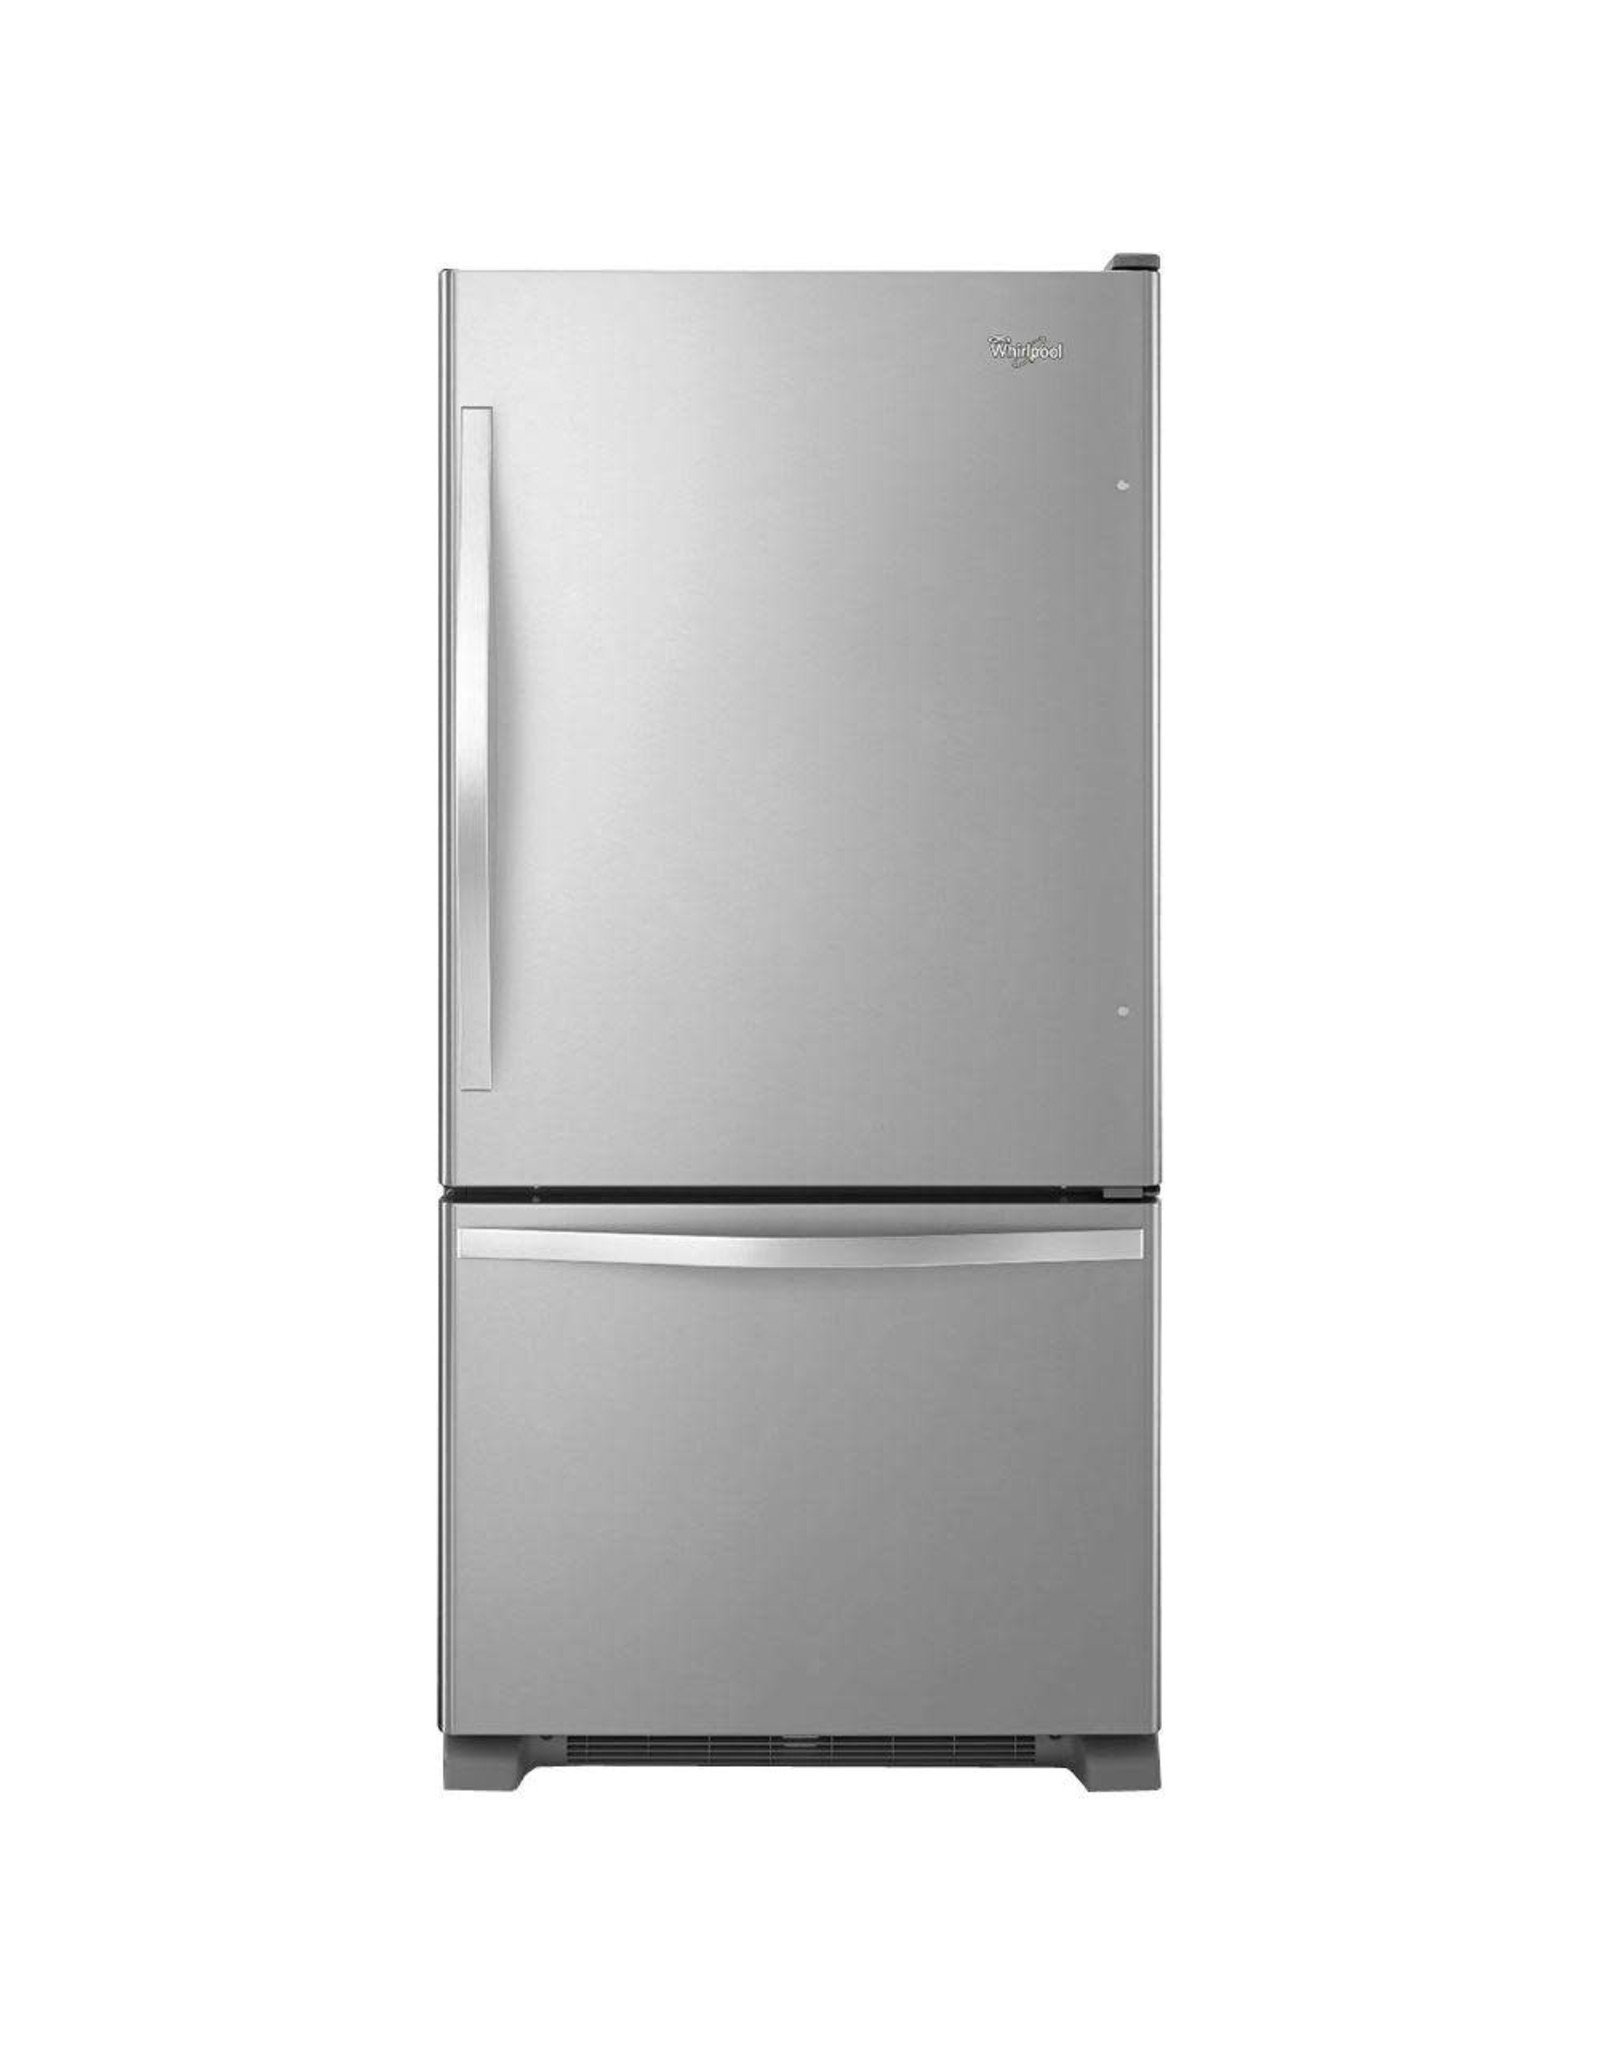 WRB329DMBM WHR No Frost Bottom-Free Standing Refr Frez - E-STAR, 19 CU FT, FACTORY INSTALLED ICE